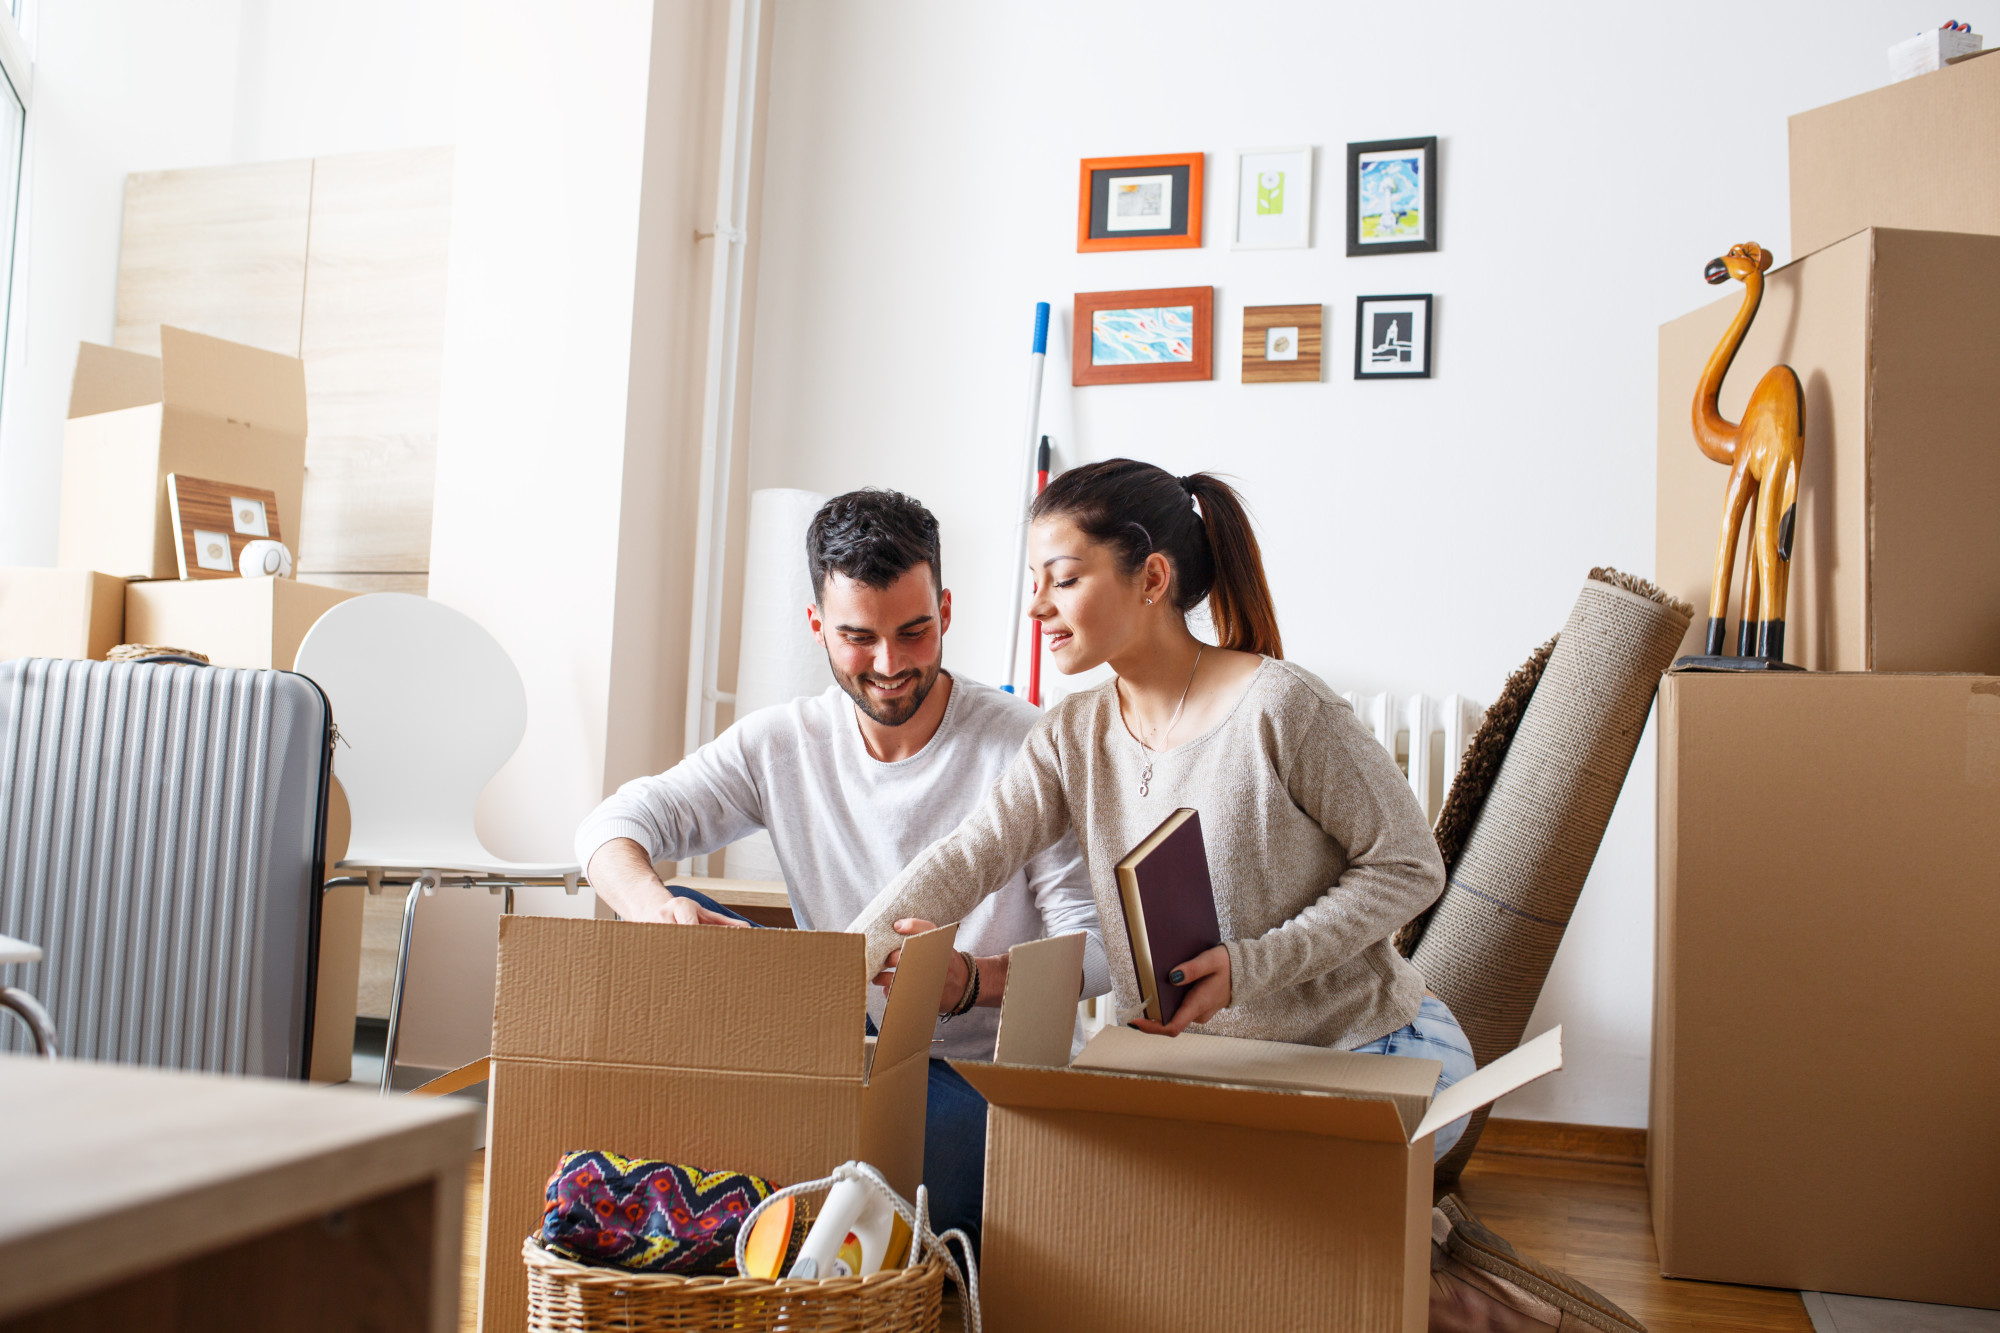 A Step-by-Step Guide For the New Home Owner What to Expect When Buying Your First House